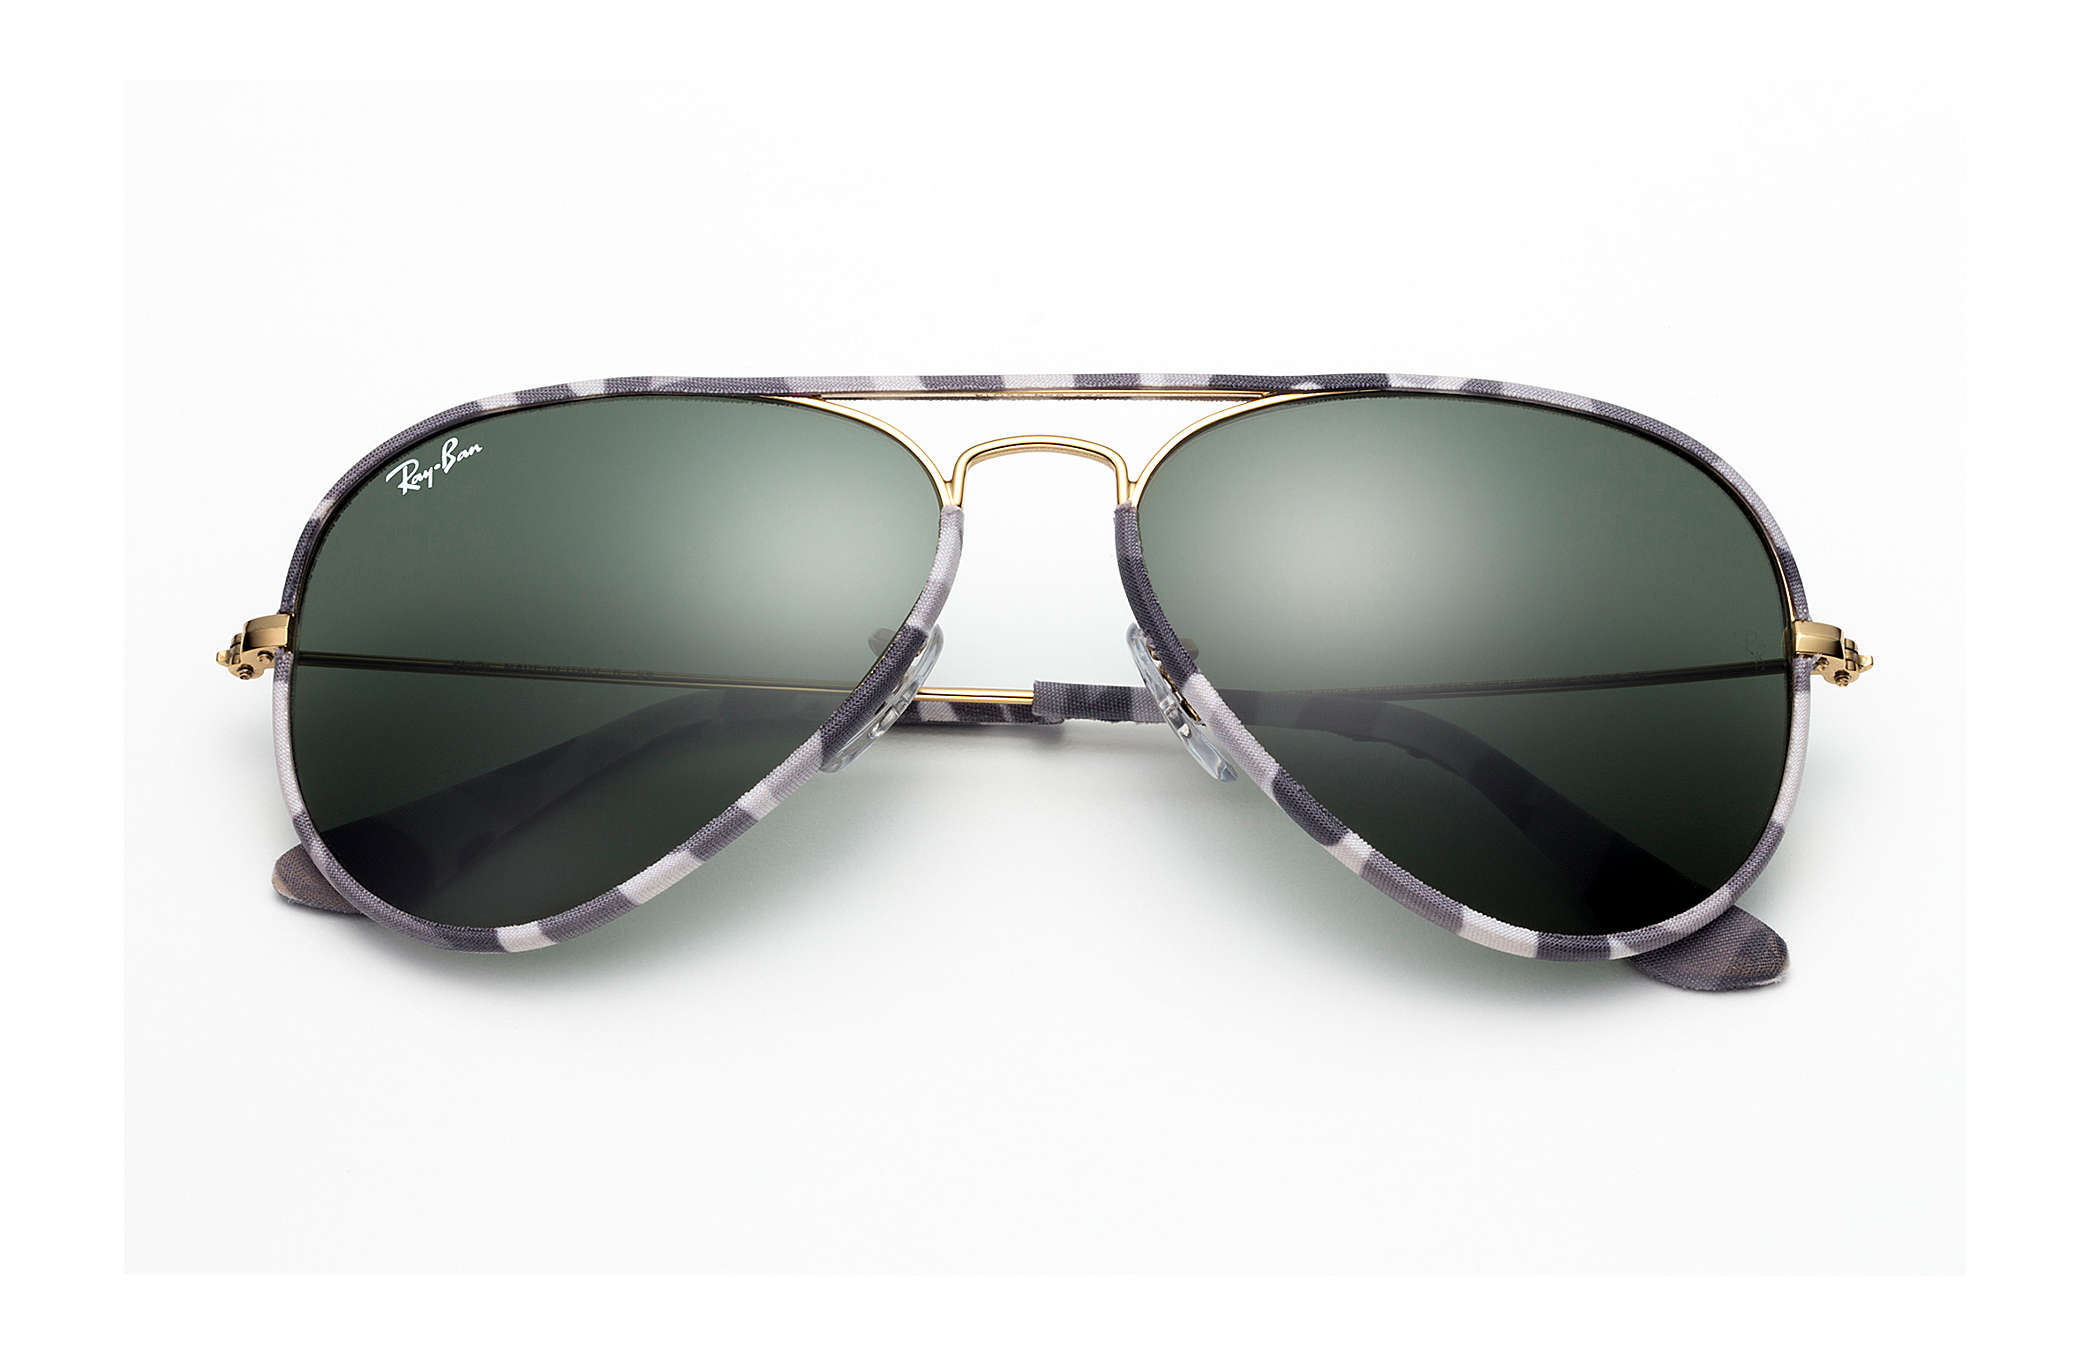 91a519c7bf Ray-Ban Aviator Full Color RB3025JM Multicolor - Metal - Green ...